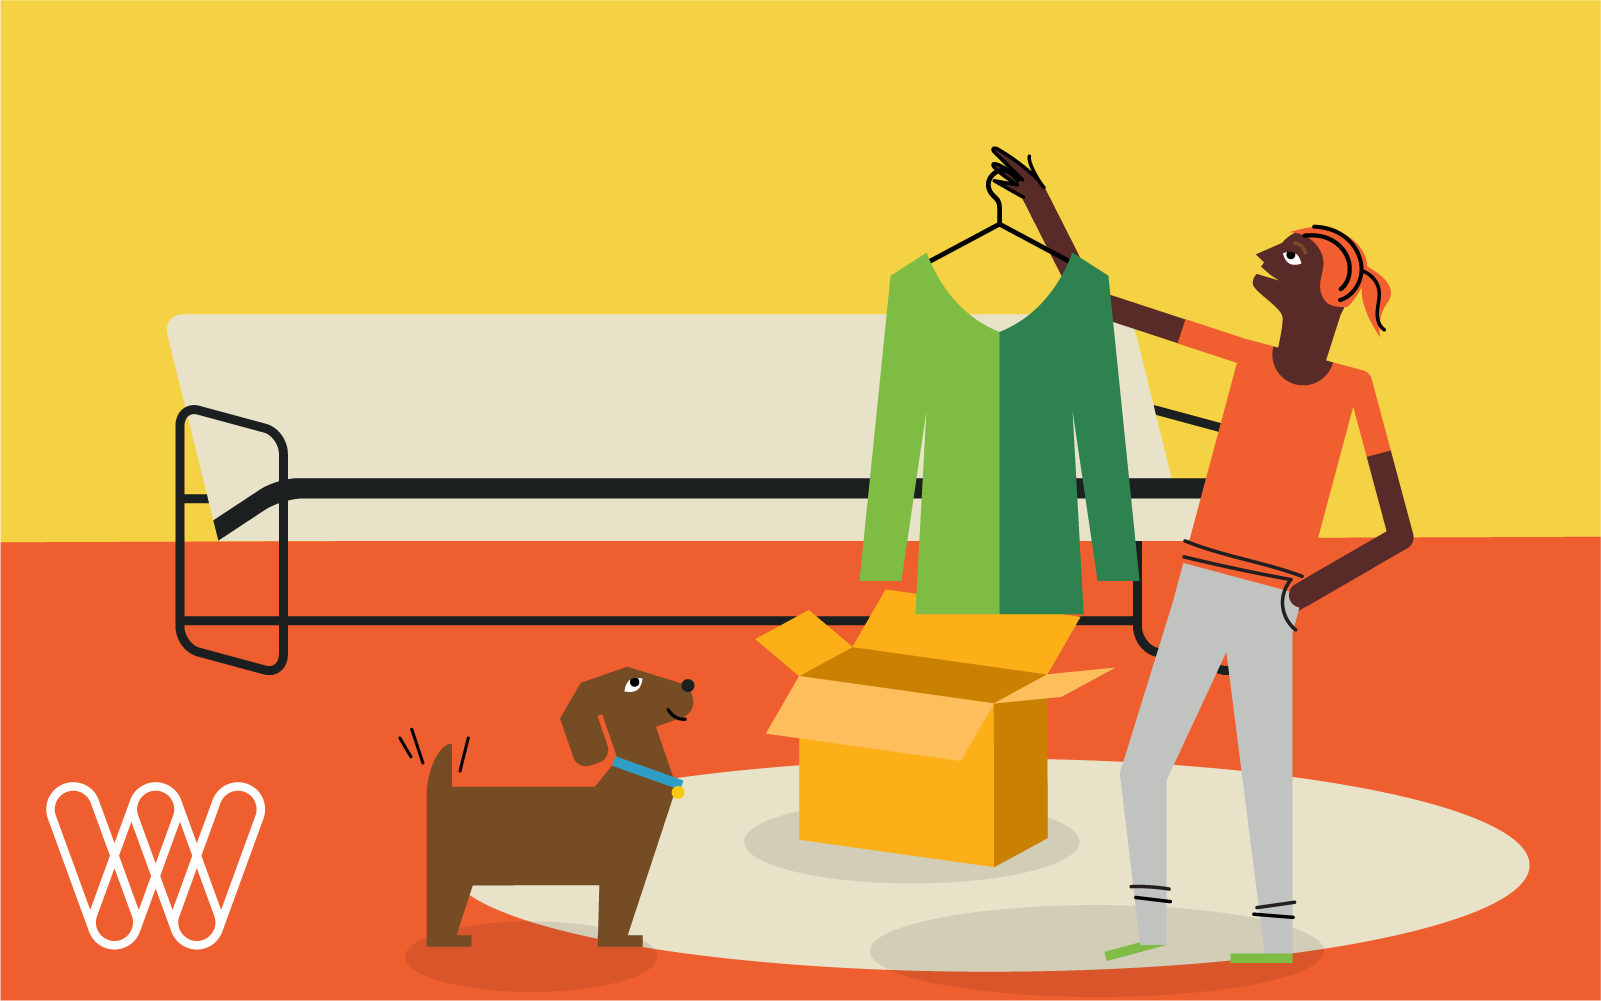 illustration of a person holding up a shirt while their dog looks on